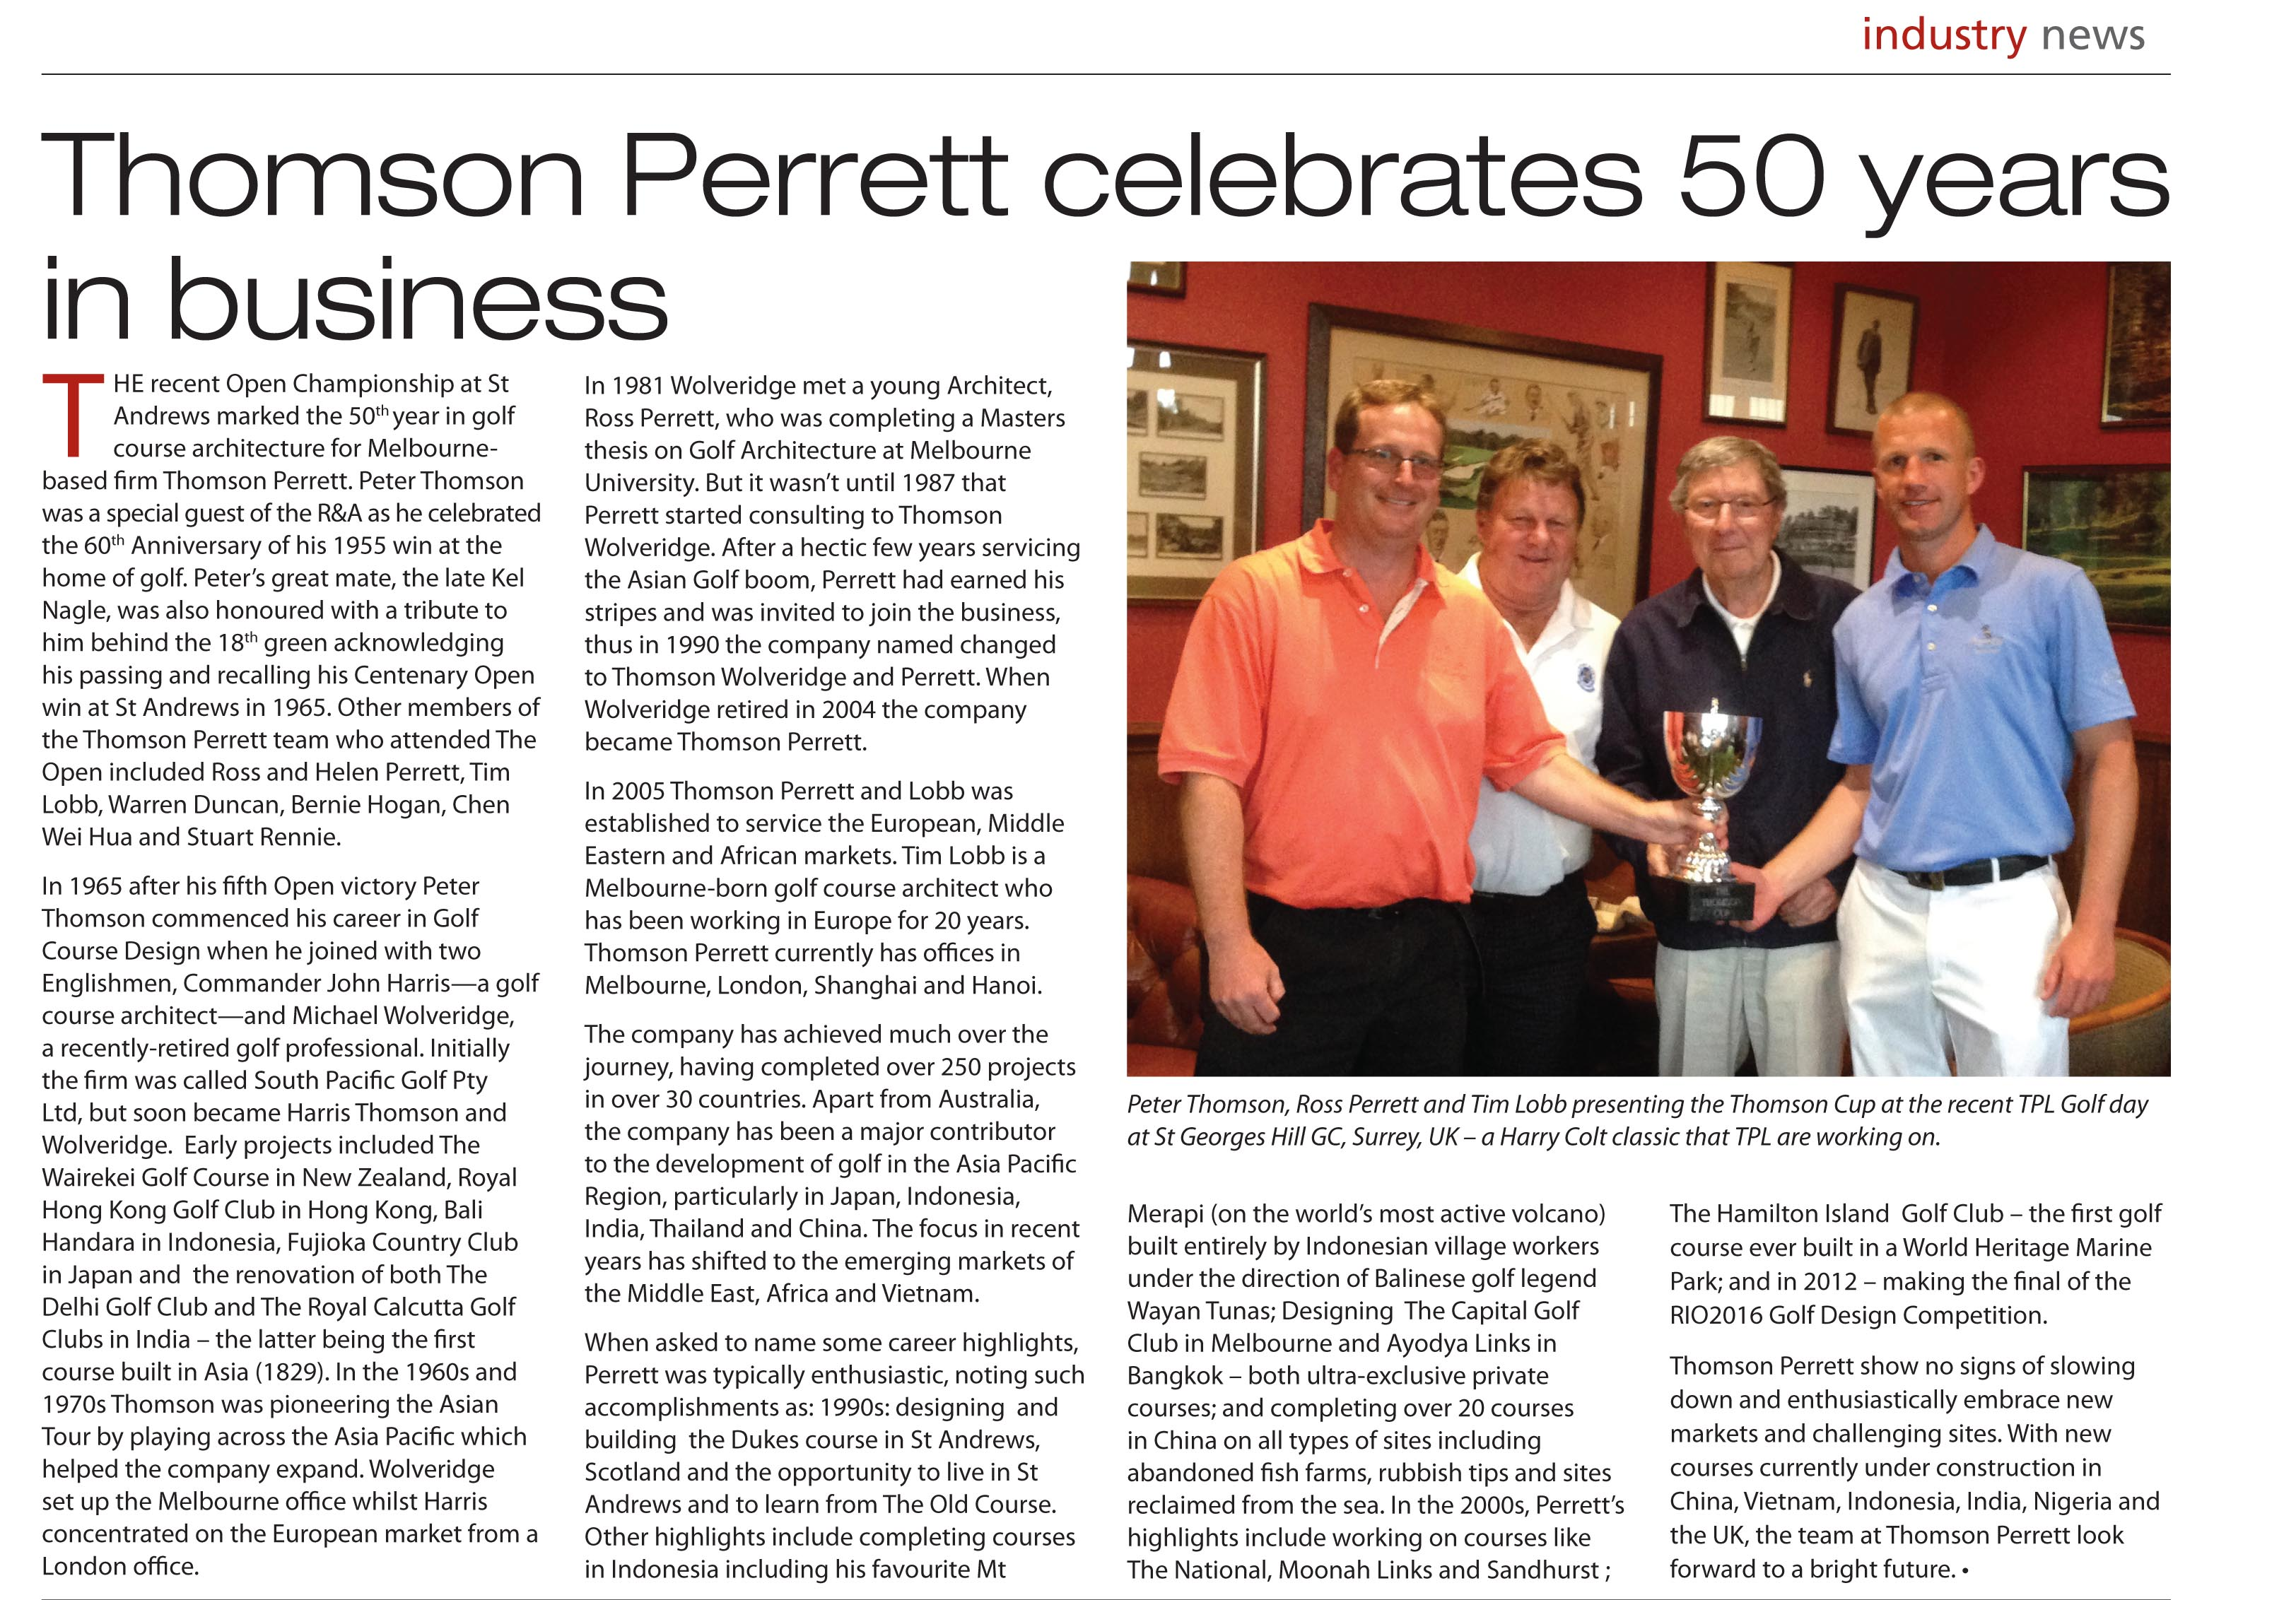 Thomson Perrett celebrate 50 years in business – Inside Golf, July 2015